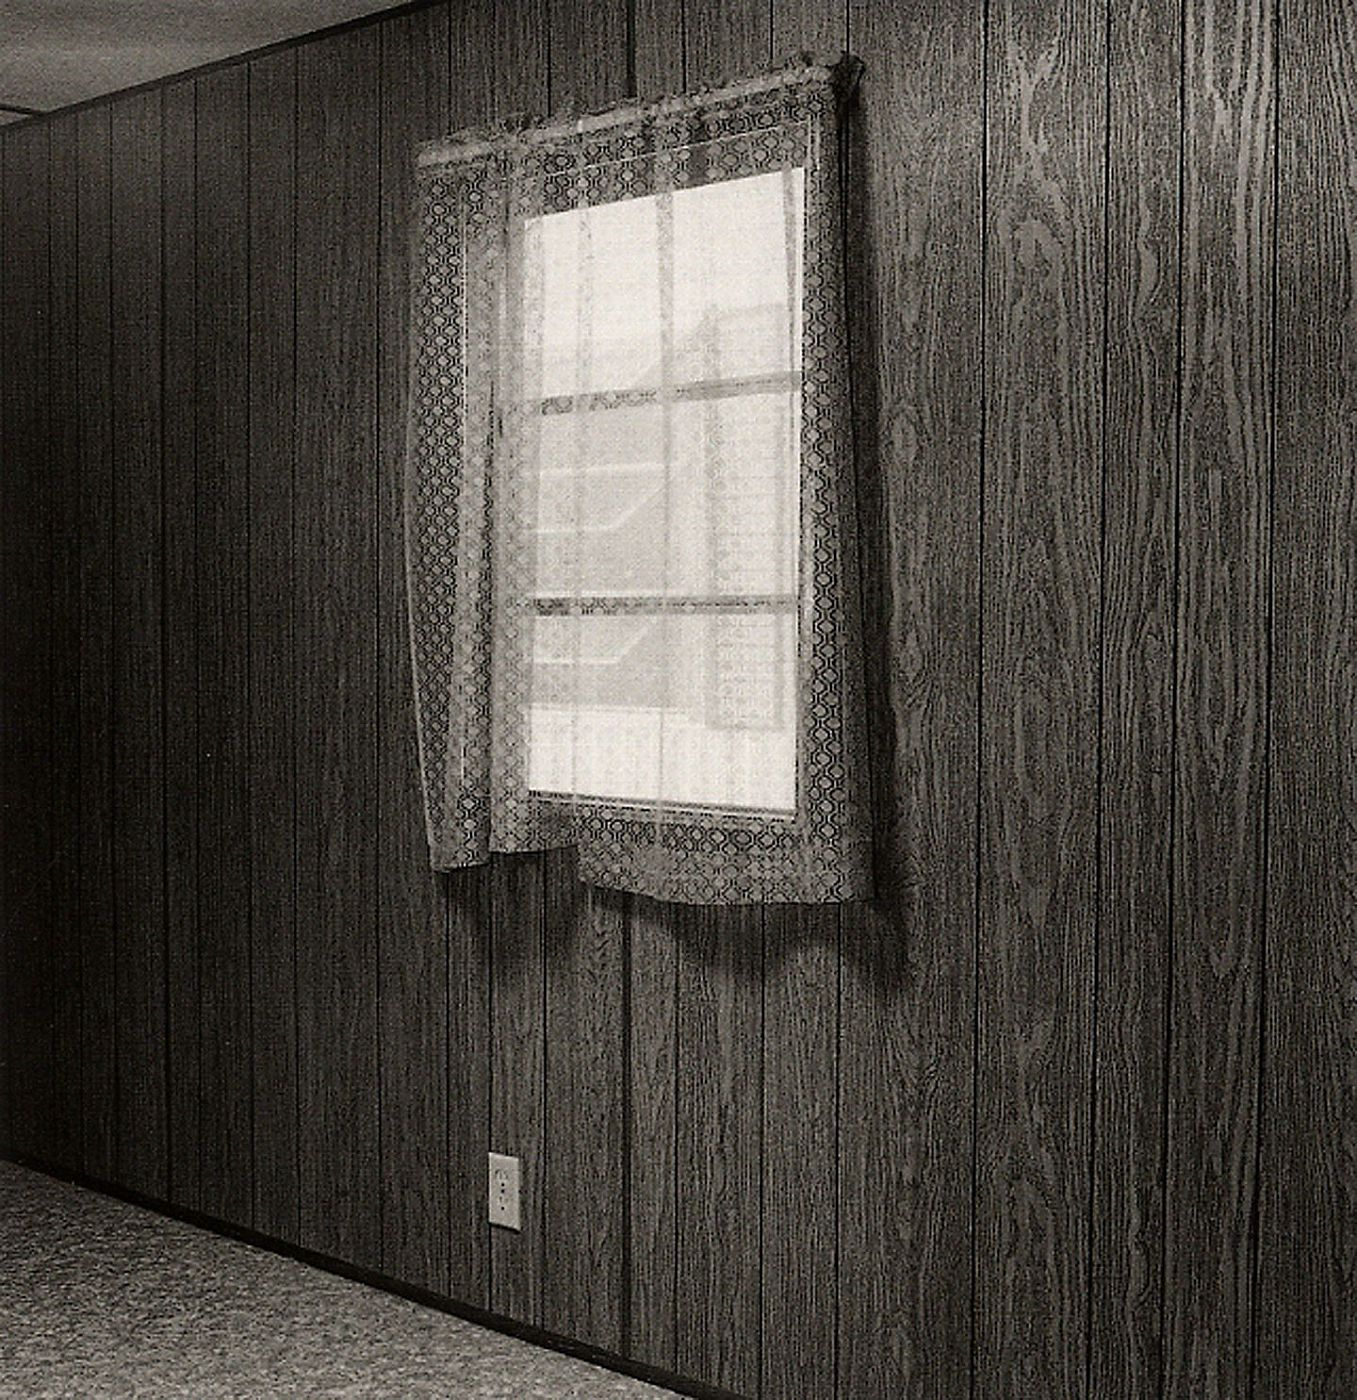 Robert Adams: Interiors 1973-1974, Limited Edition Artist's Proof [SIGNED]